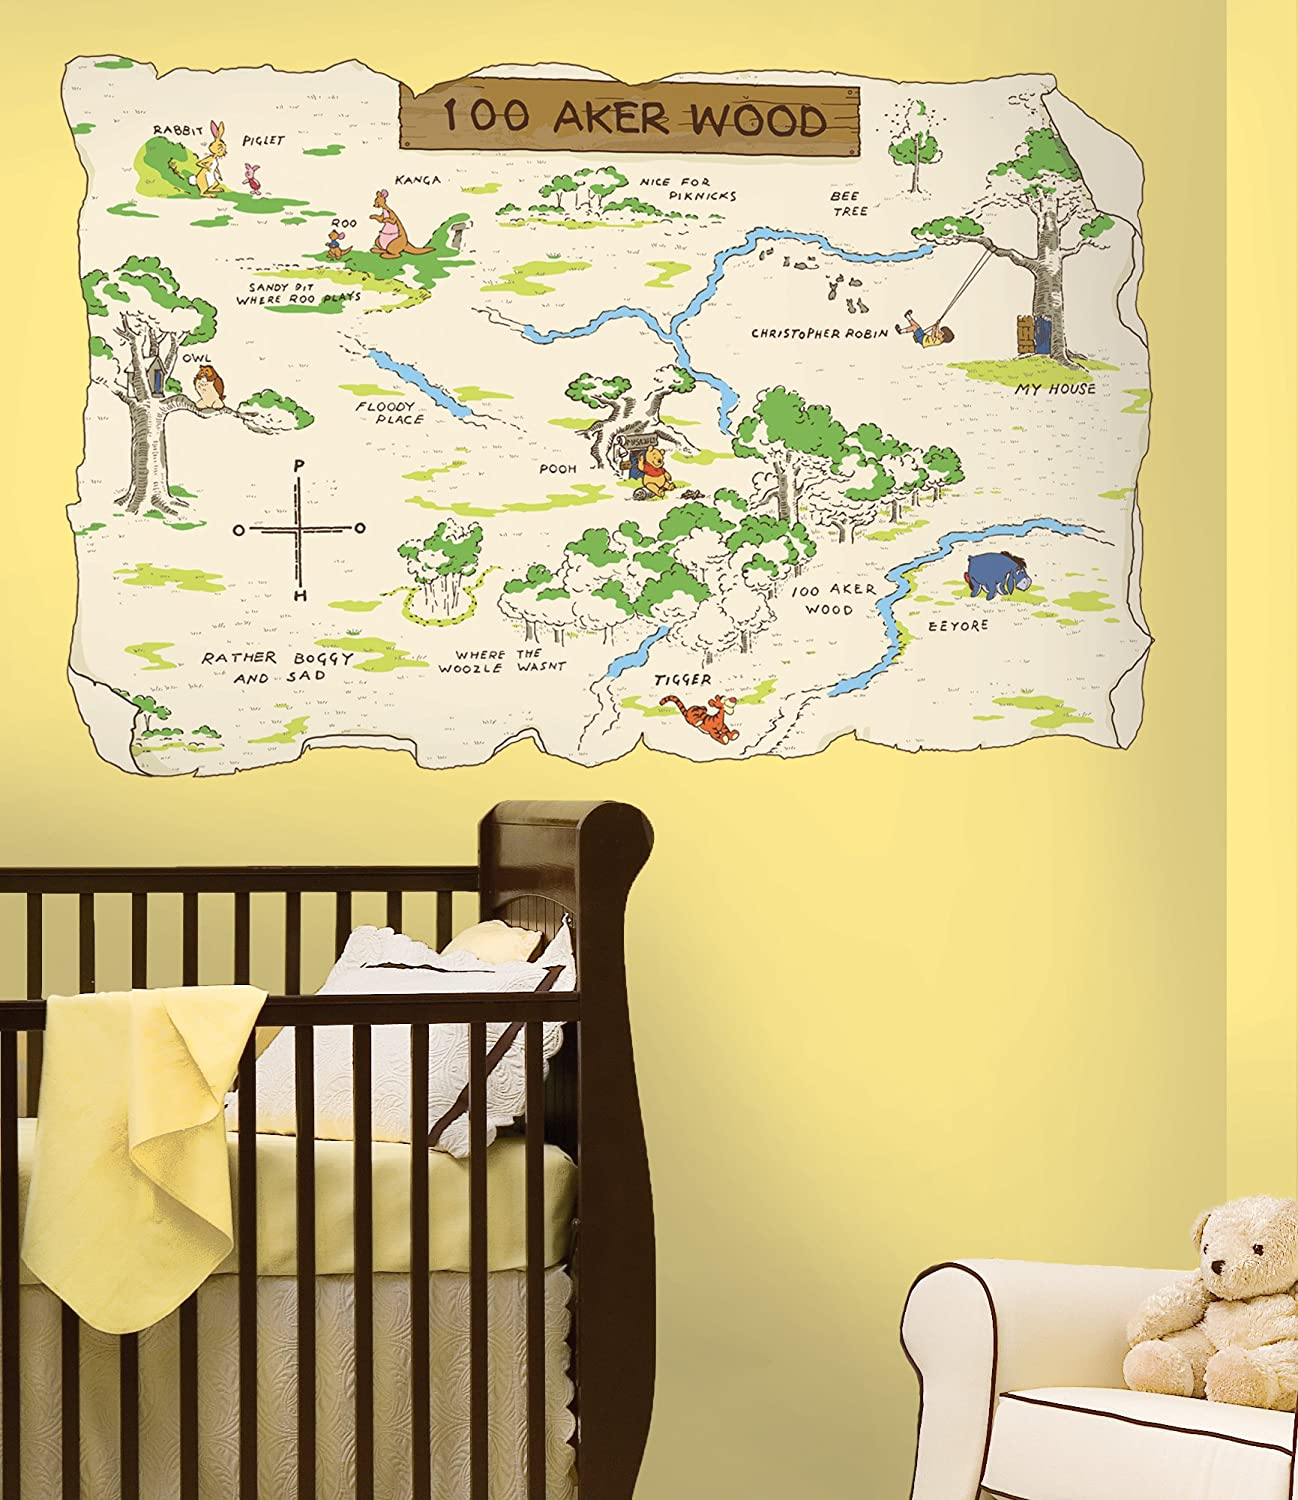 Roommates Rmk1502Slm Pooh And Friends 100 Aker Wood Map Peel & Stick ...